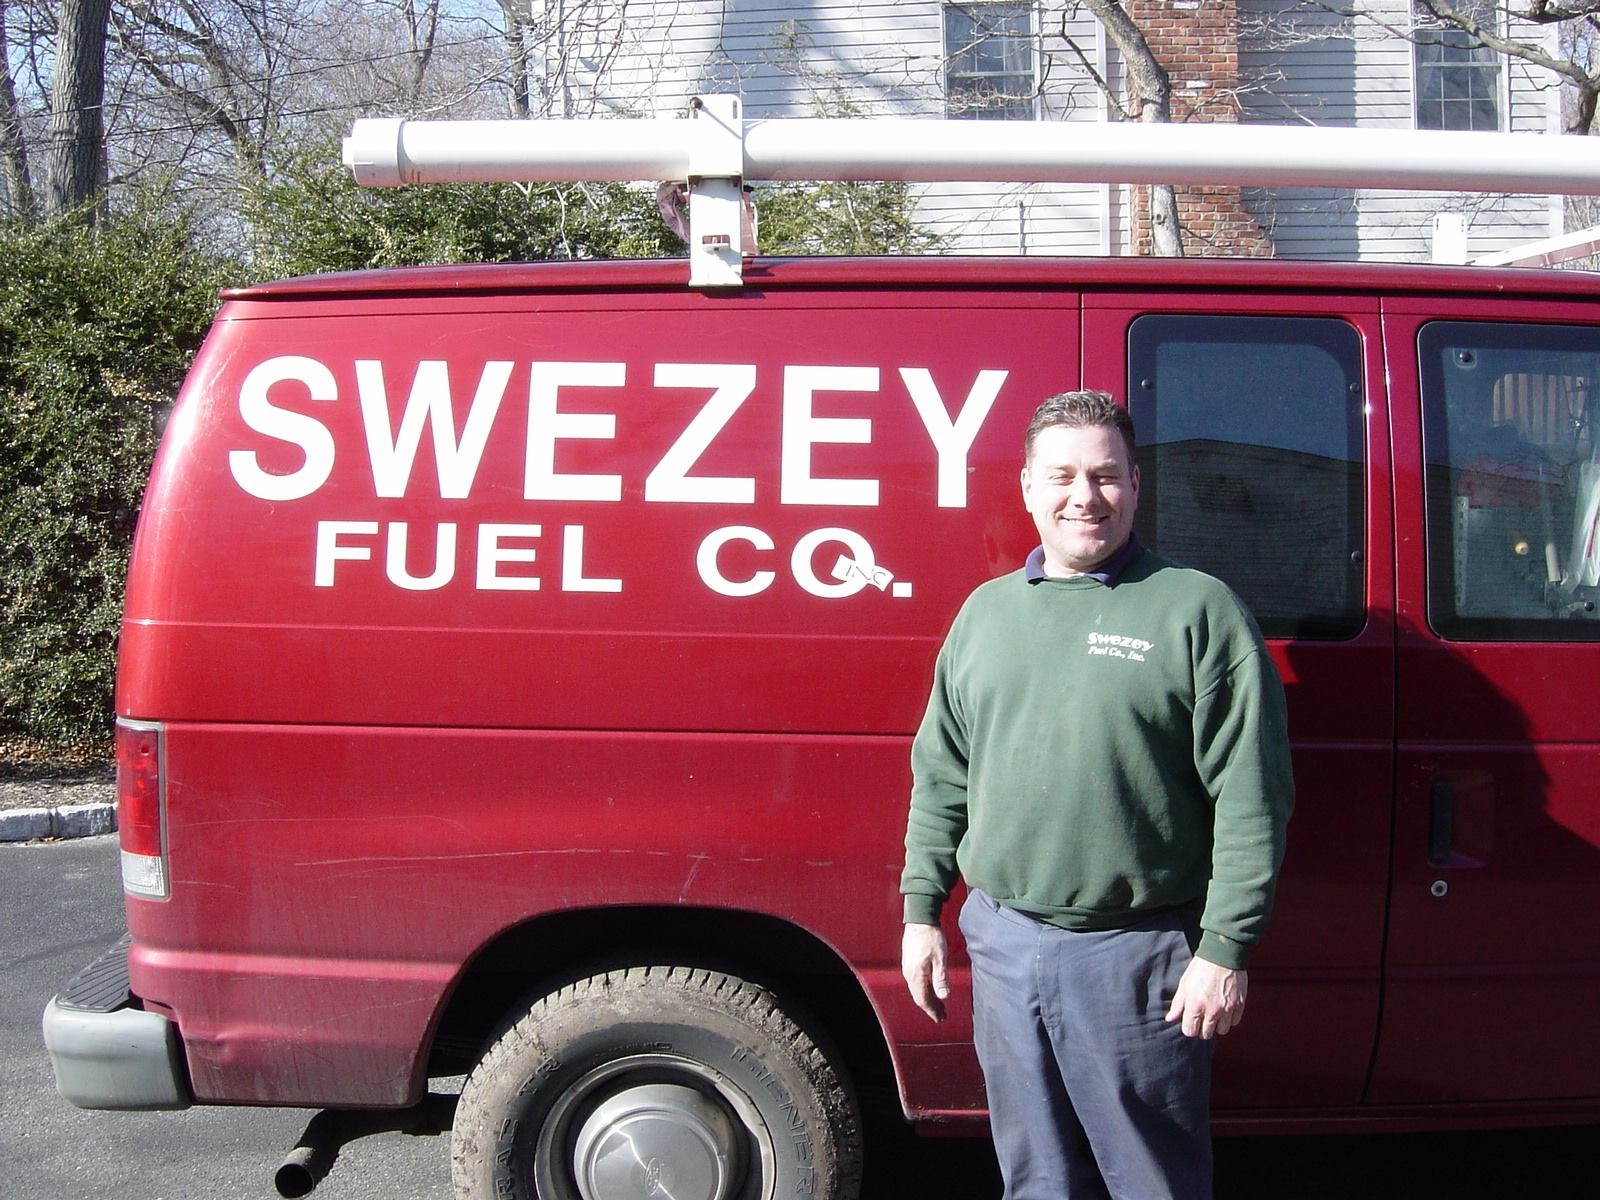 Swezey Fuel Co. Inc. image 2